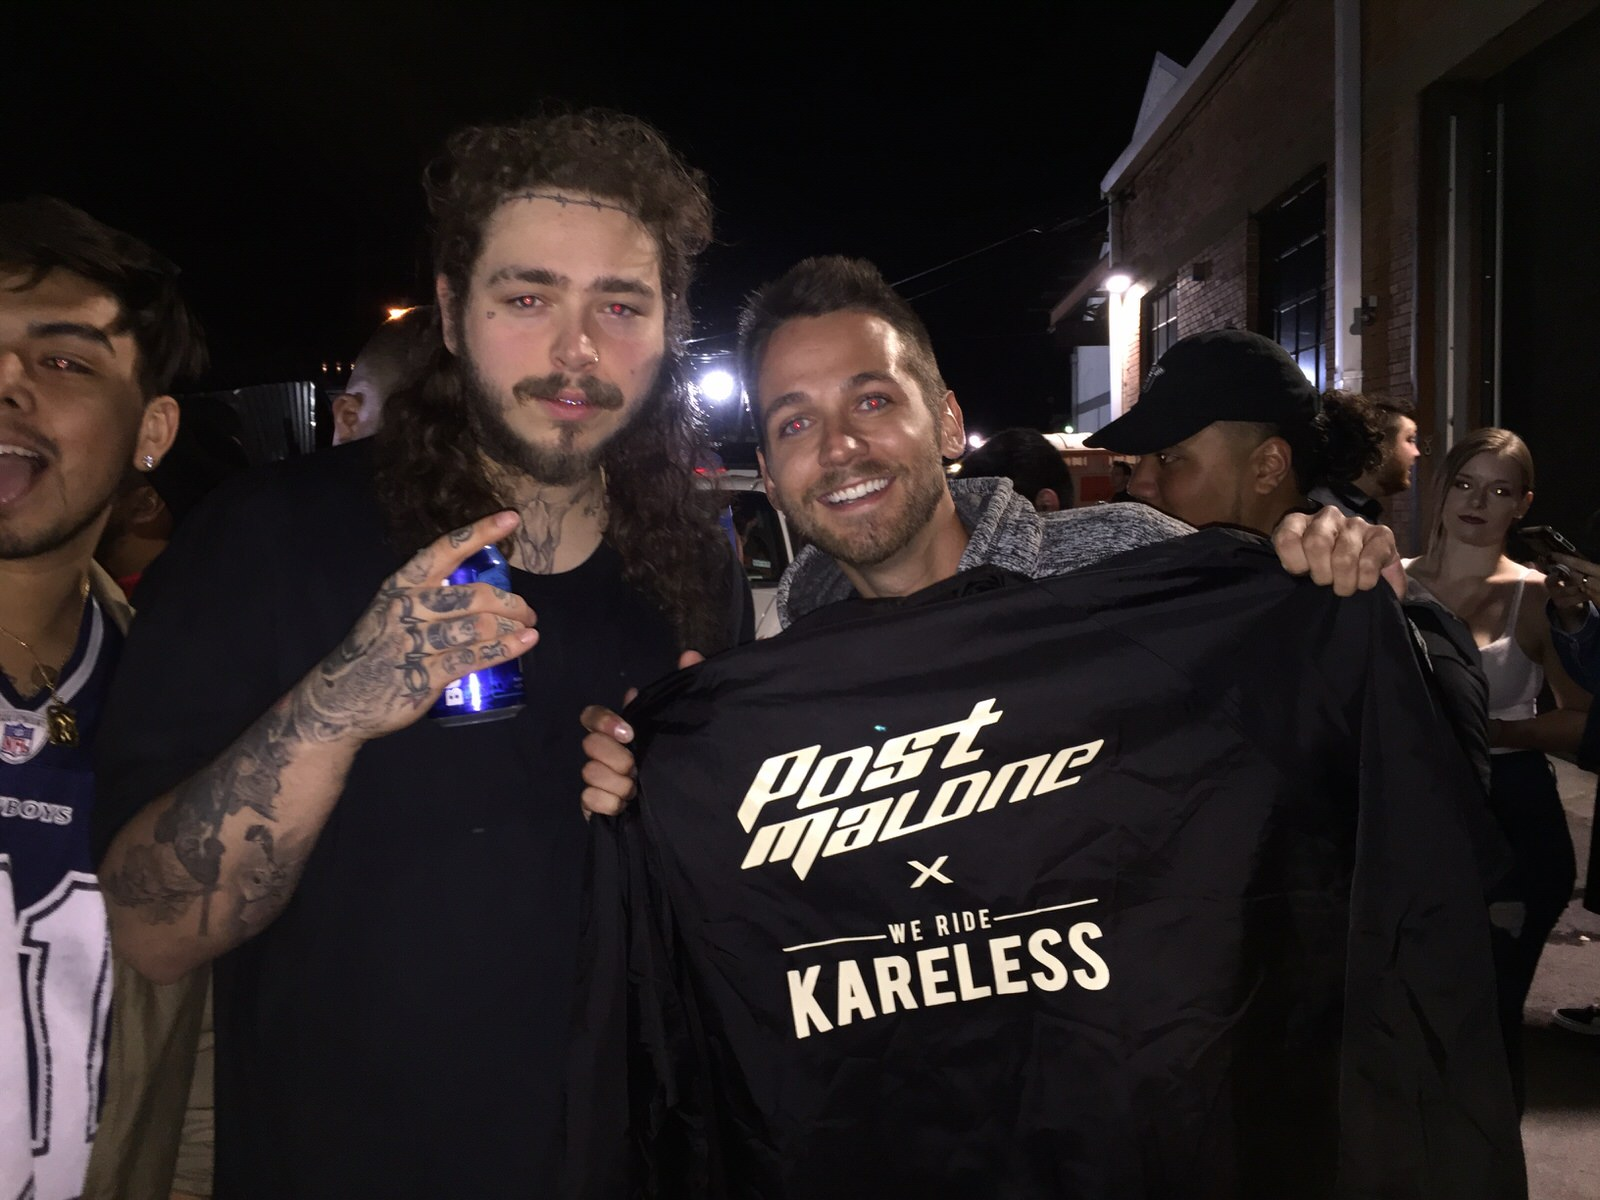 Kareless with Post Malone